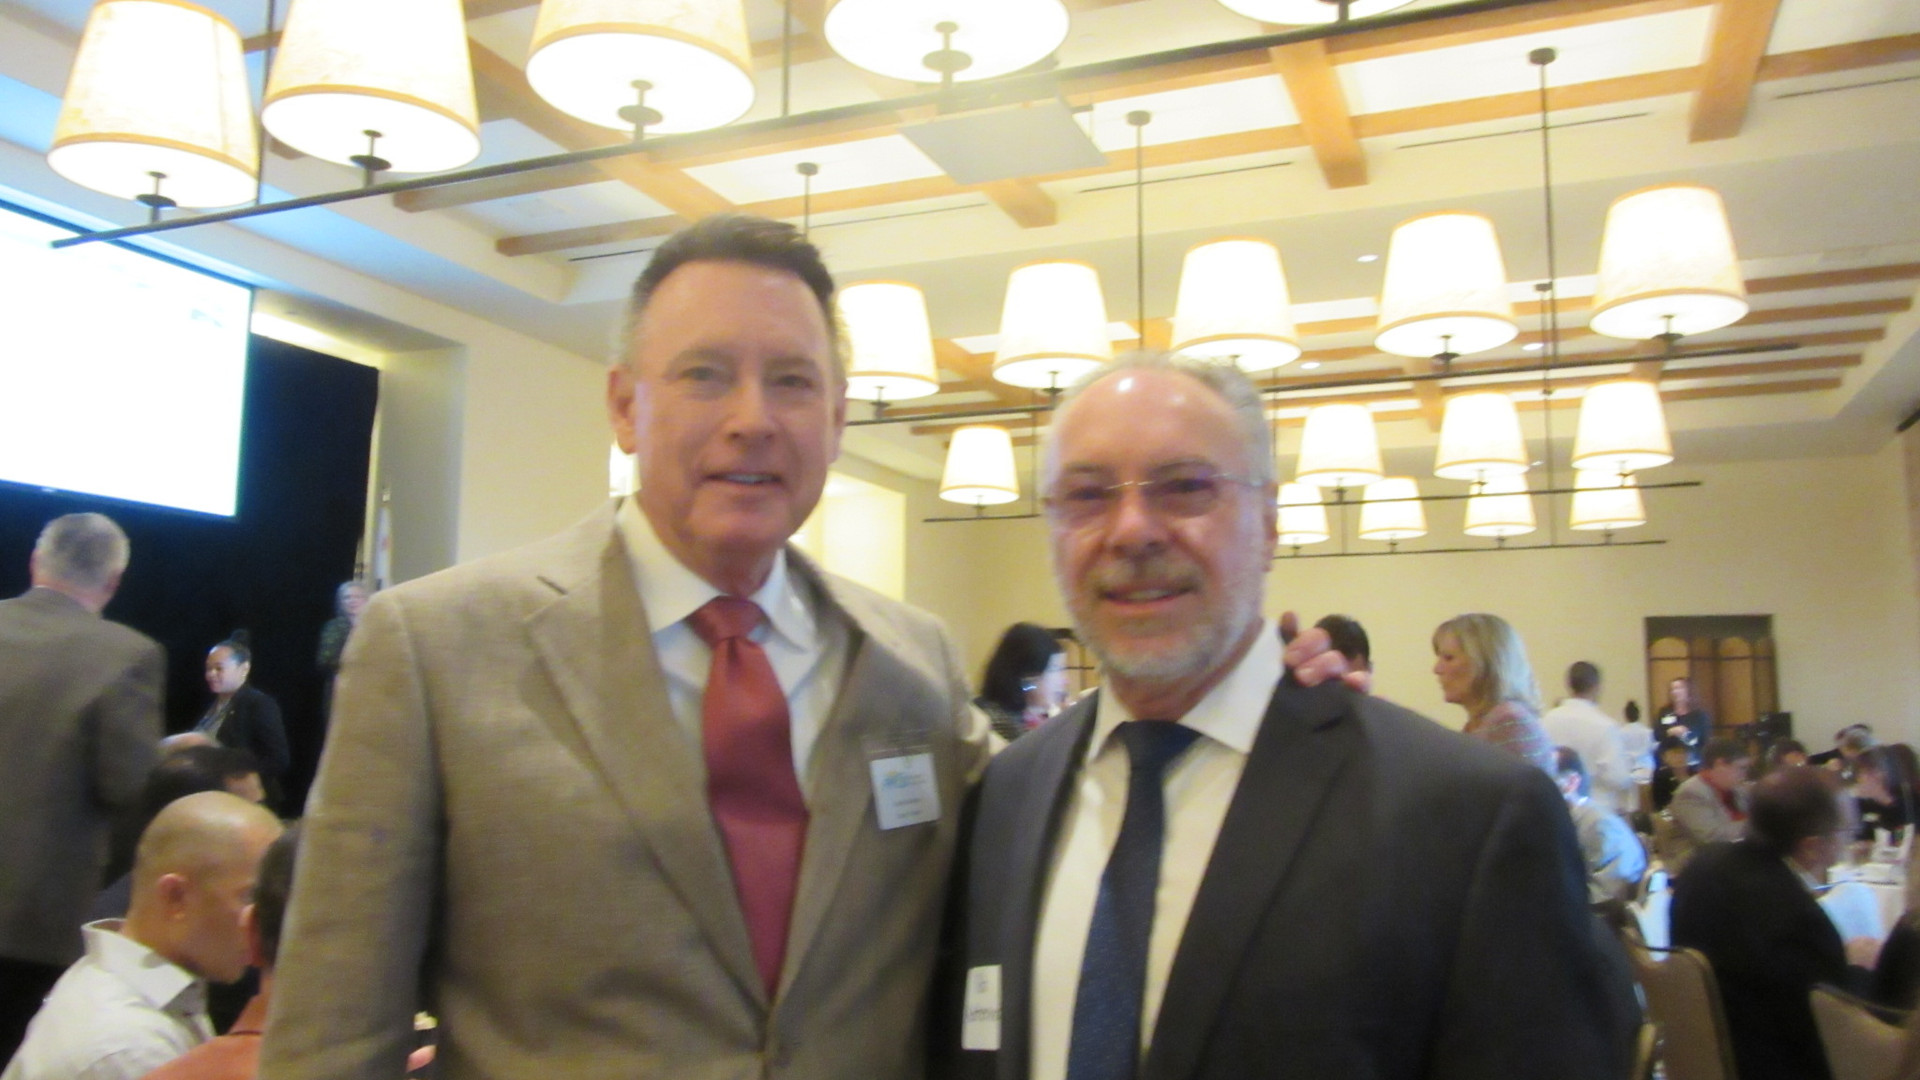 Sandy at Chamber event with Rob Katherma